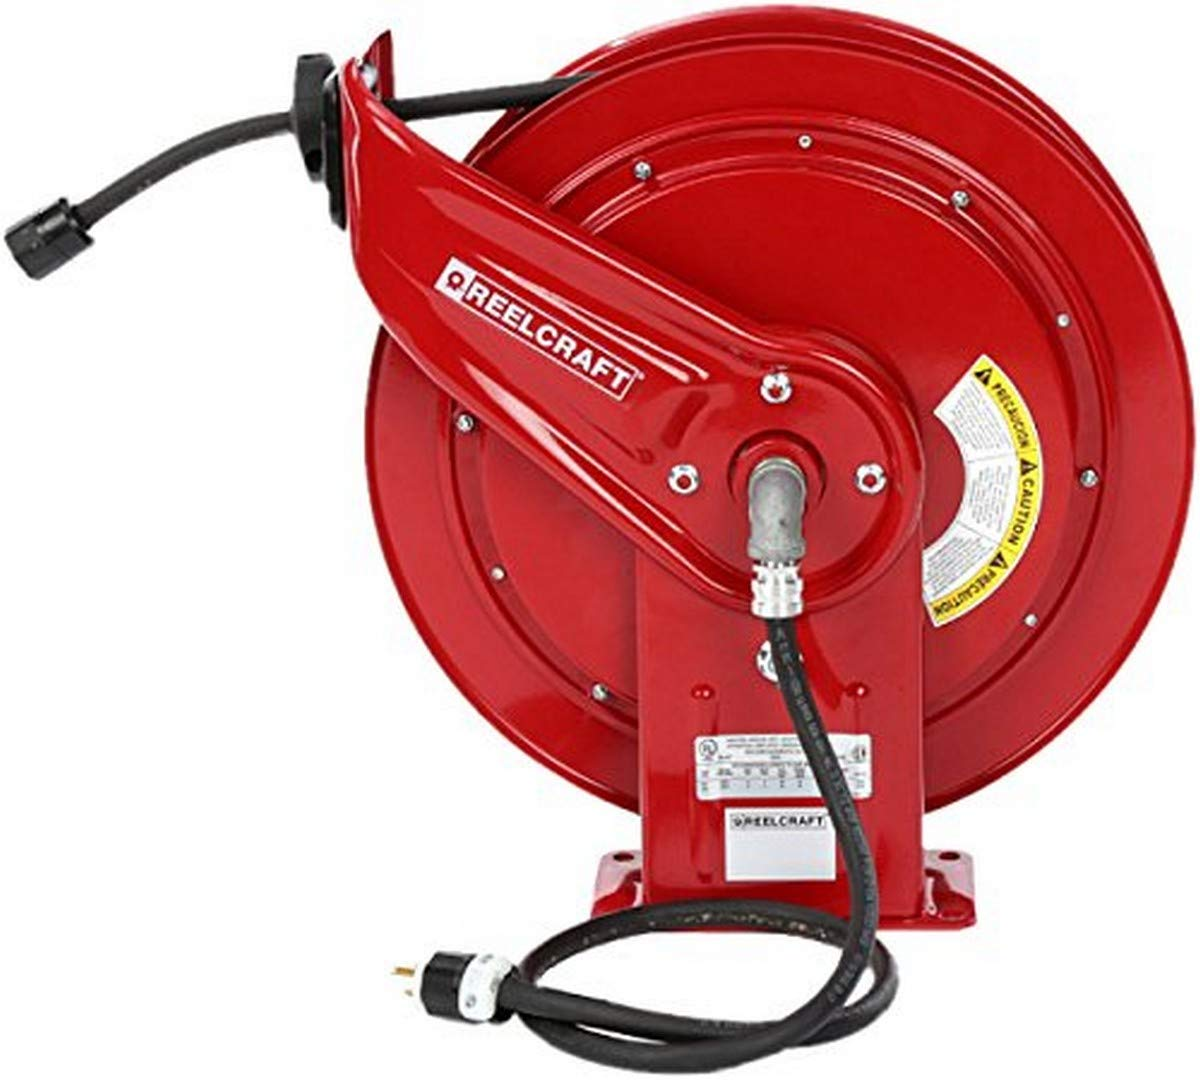 Reelcraft L 70100 123 3 Spring Retractable Cord Reel, 12 AWG/3 Conductors x 100', 15 AMP, Single Outlet, Cord Included